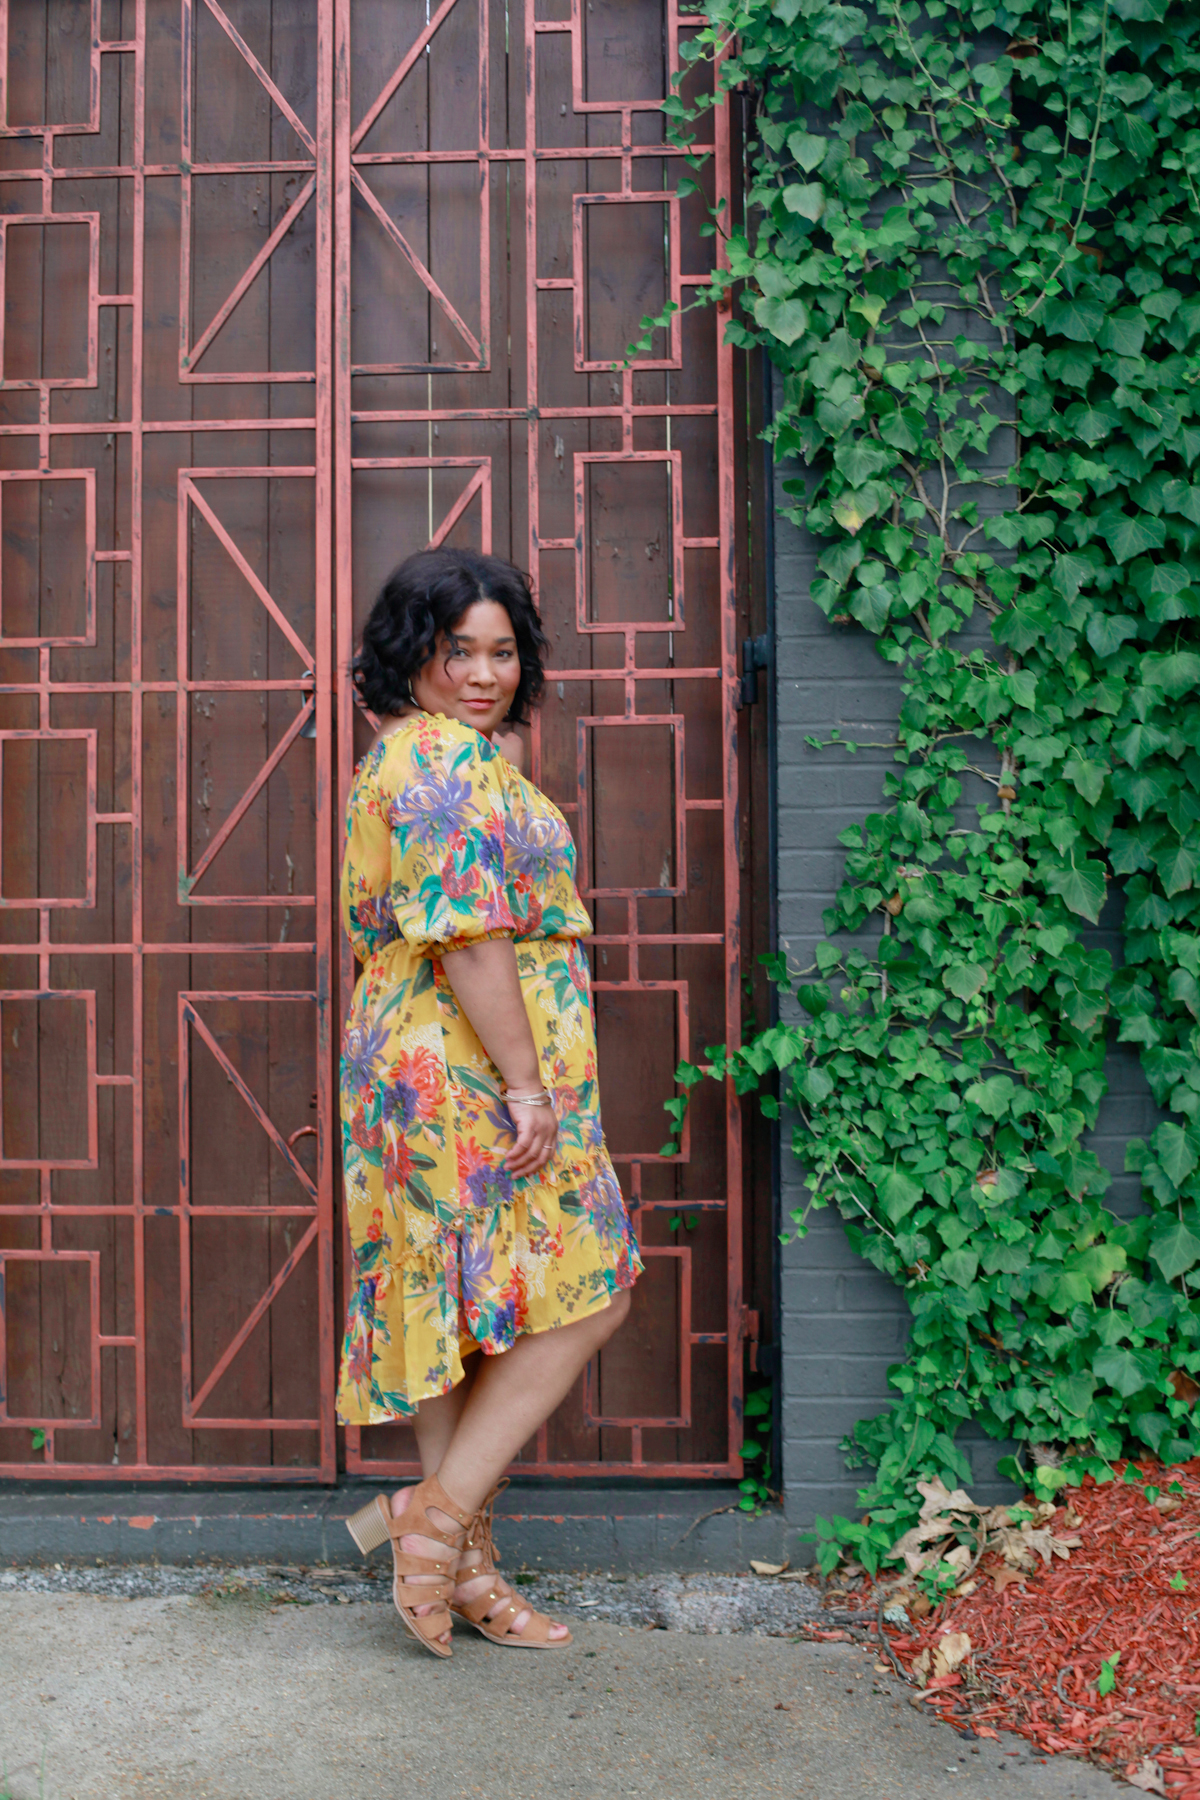 Andrea Fenise Memphis Fashion Blogger features Working Girl Interview with Kim of KP Fusion